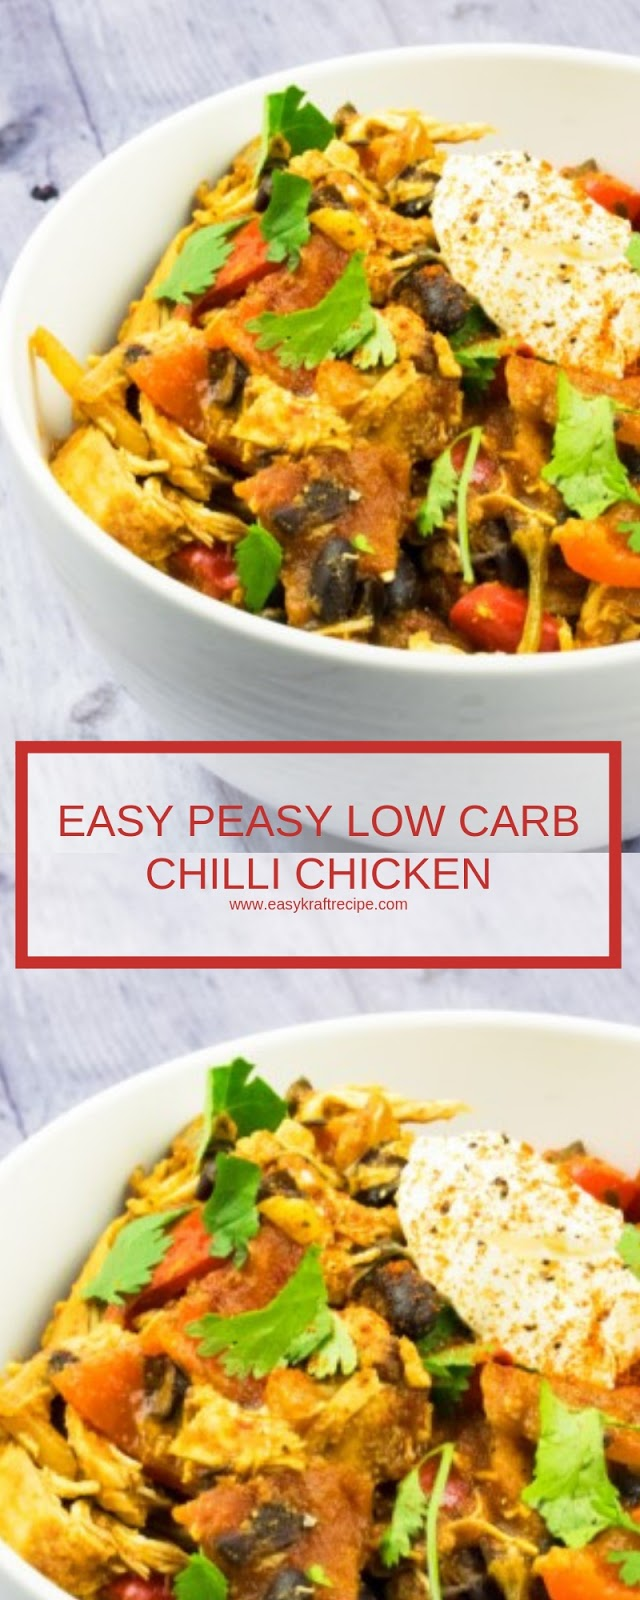 EASY PEASY LOW CARB CHILLI CHICKEN